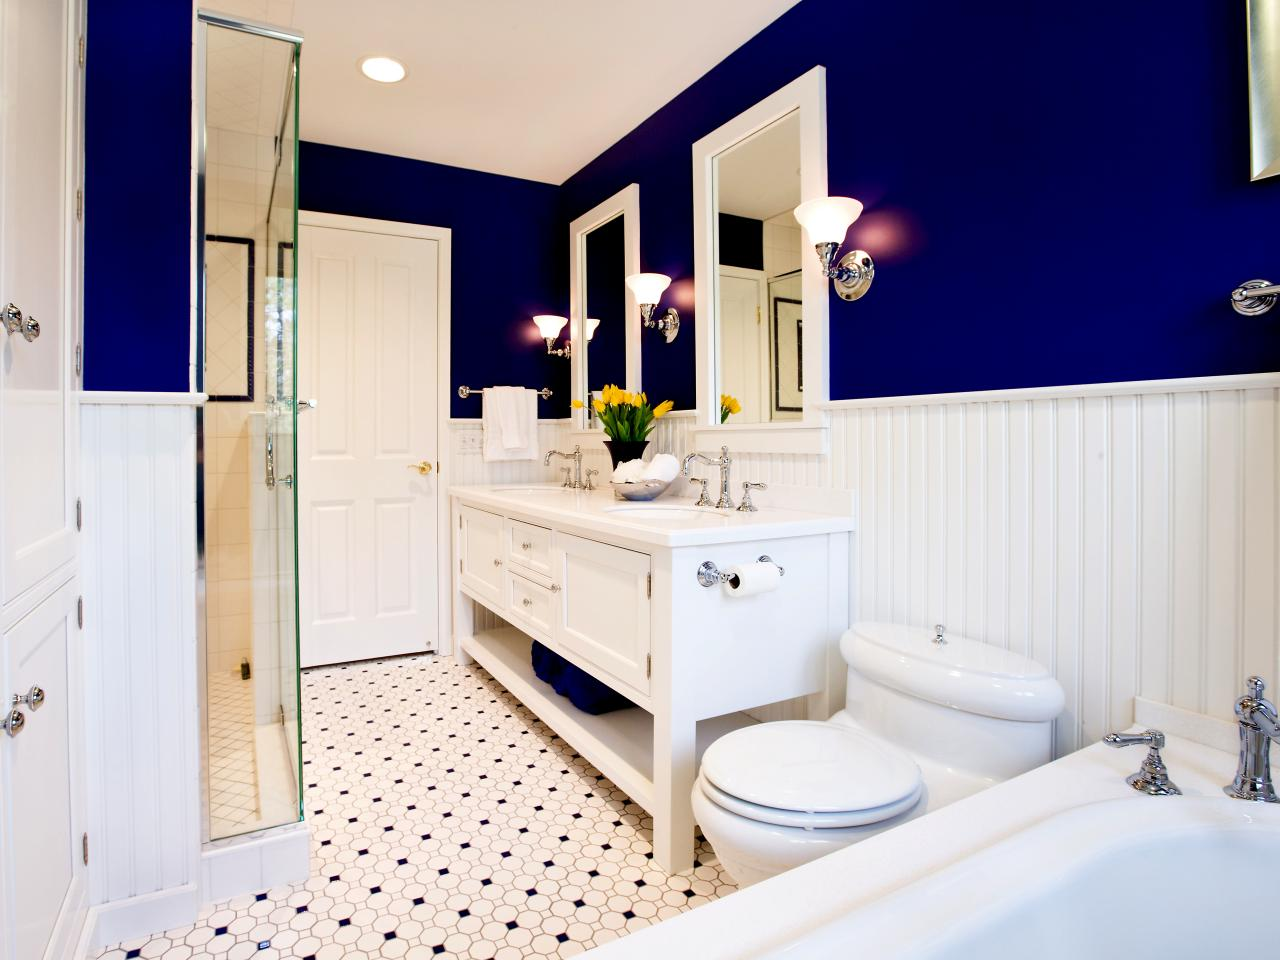 Foolproof Bathroom Color Combos HGTV - Navy blue bathroom accessories for small bathroom ideas